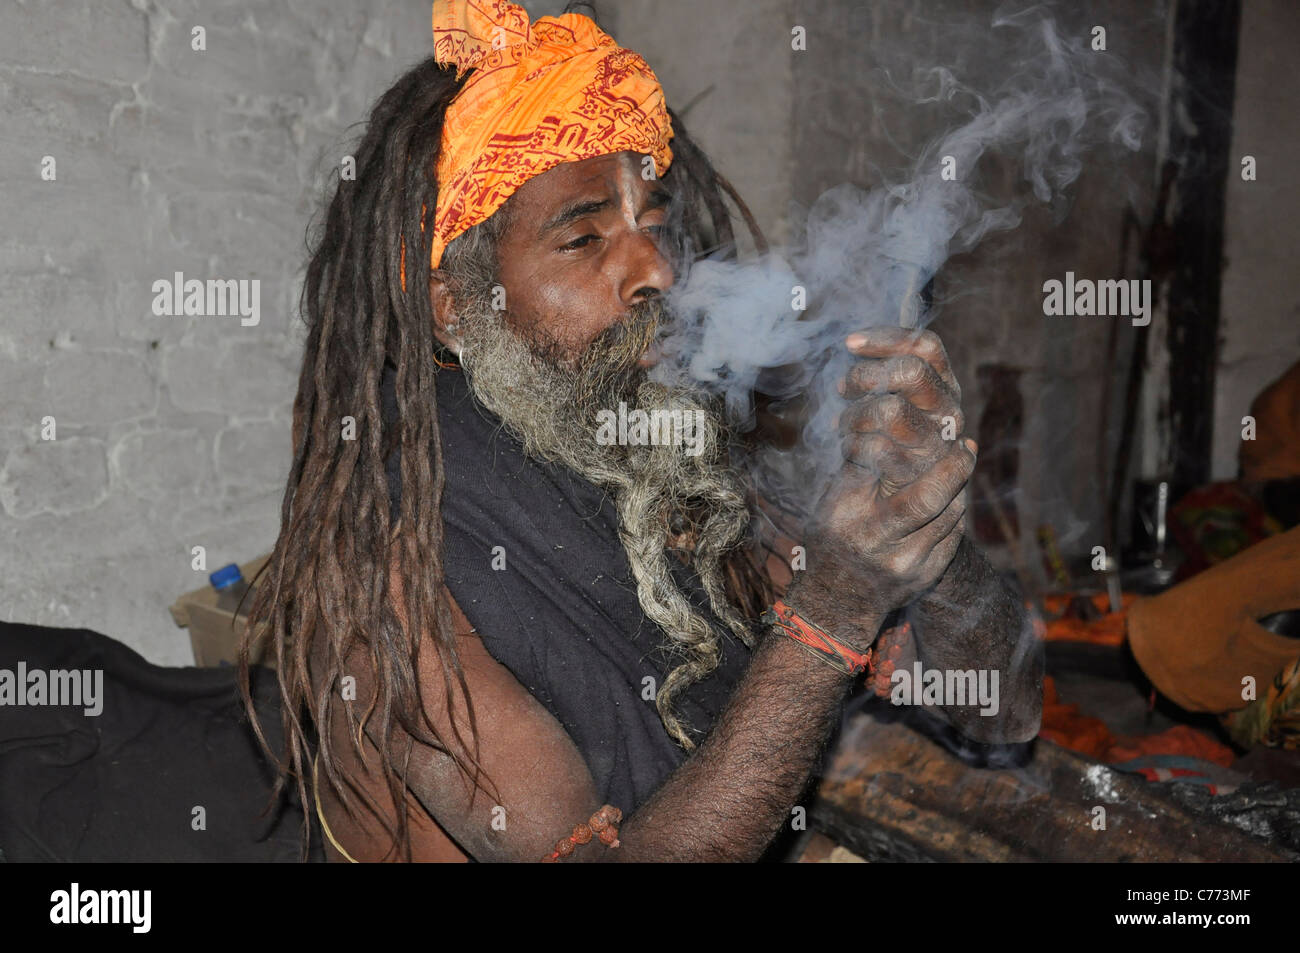 A Sadhu enjoying smoking marijuana on the occasion of  'Shiva Ratri' festival in Pashupatinath temple area, - Stock Image